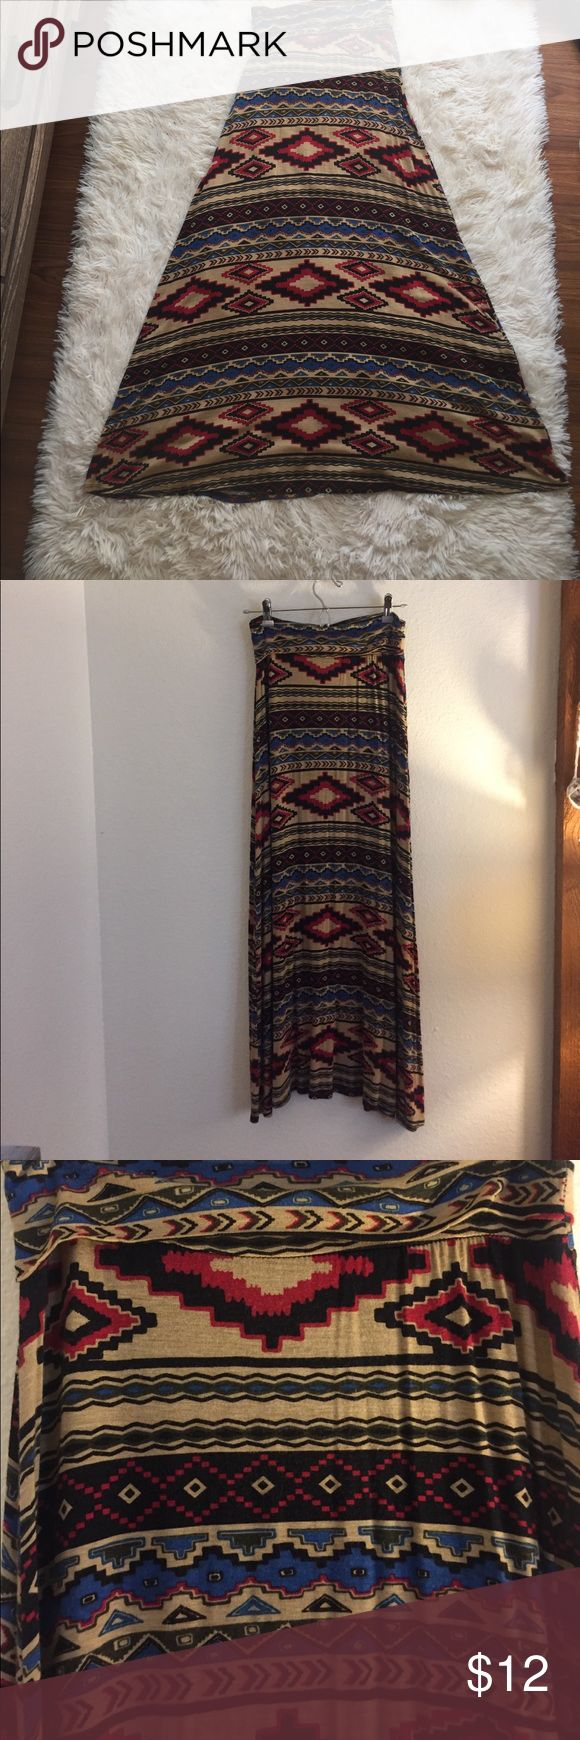 Aztec Maxi Skirt! Super cozy maxi skirt! High waisted banded style which can be worn up or folded over as shown. Flowly slinky stretch material. Full long maxi length. Skirts Maxi